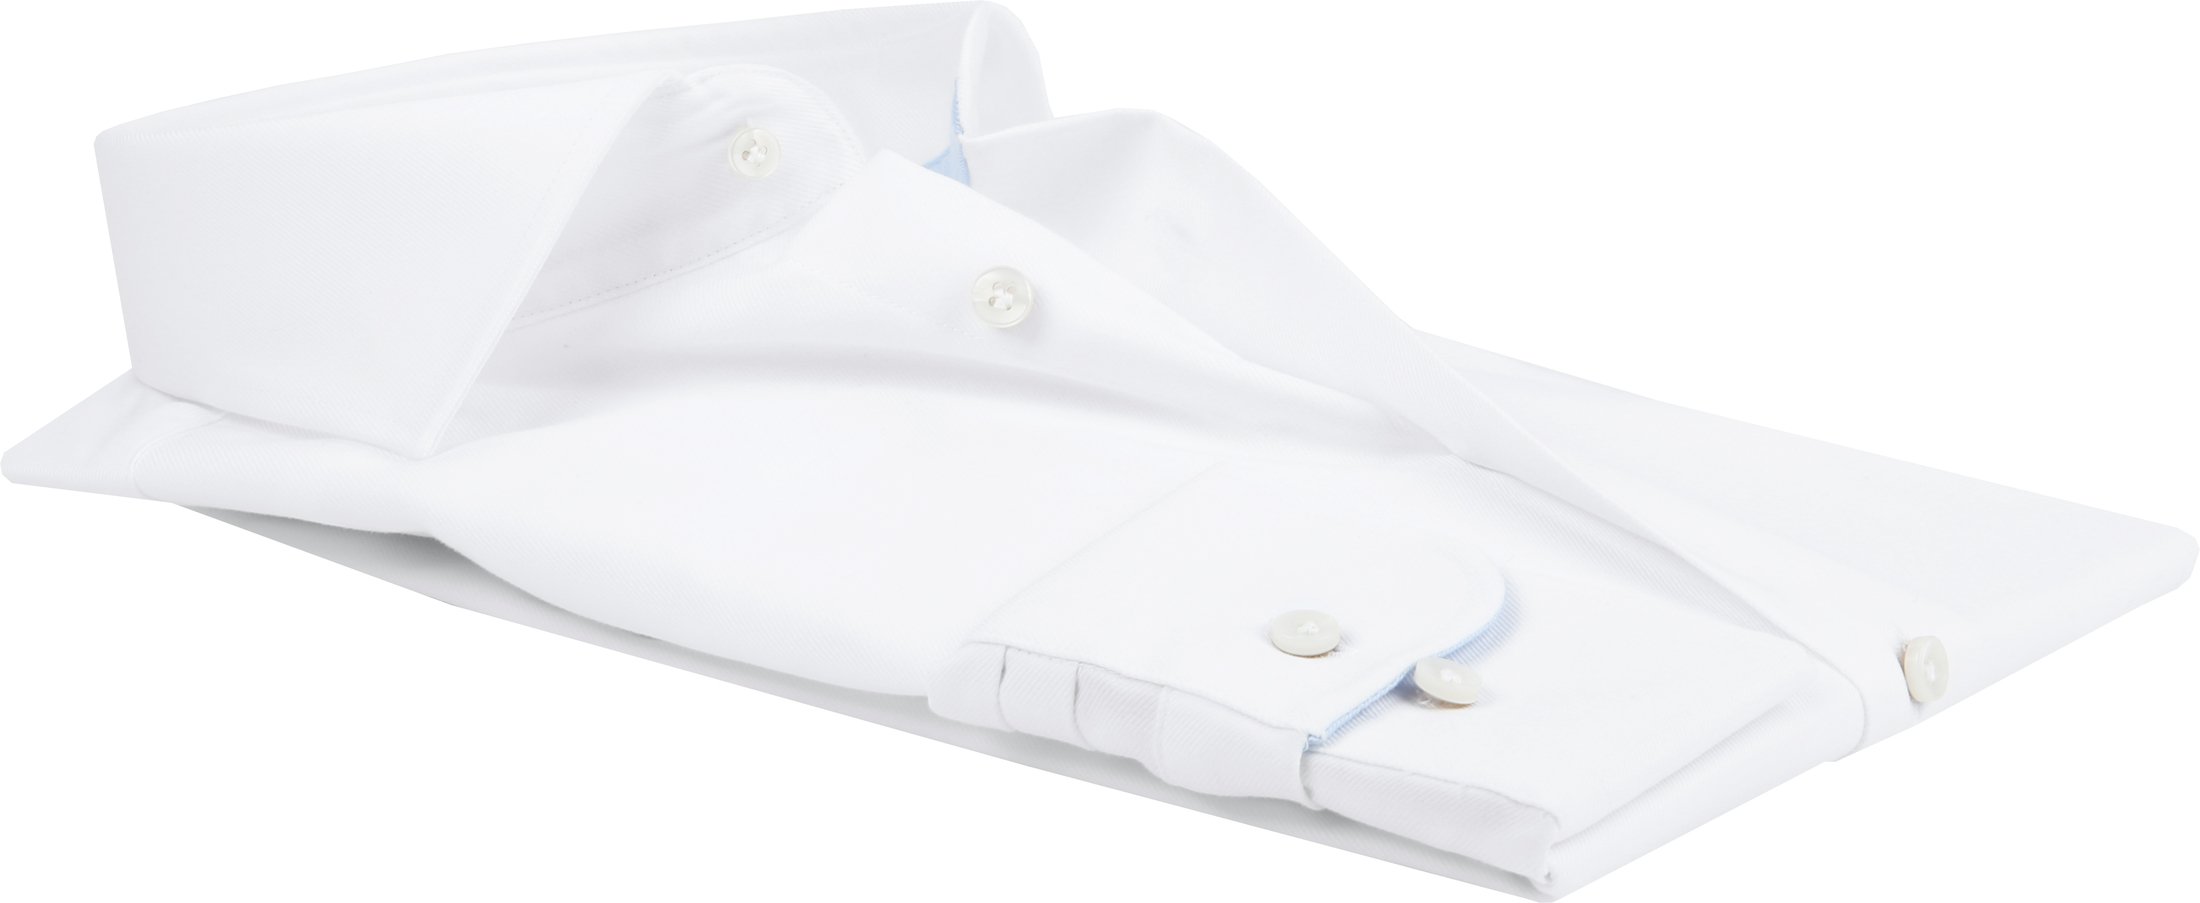 Profuomo Shirt White Blue Accent foto 3